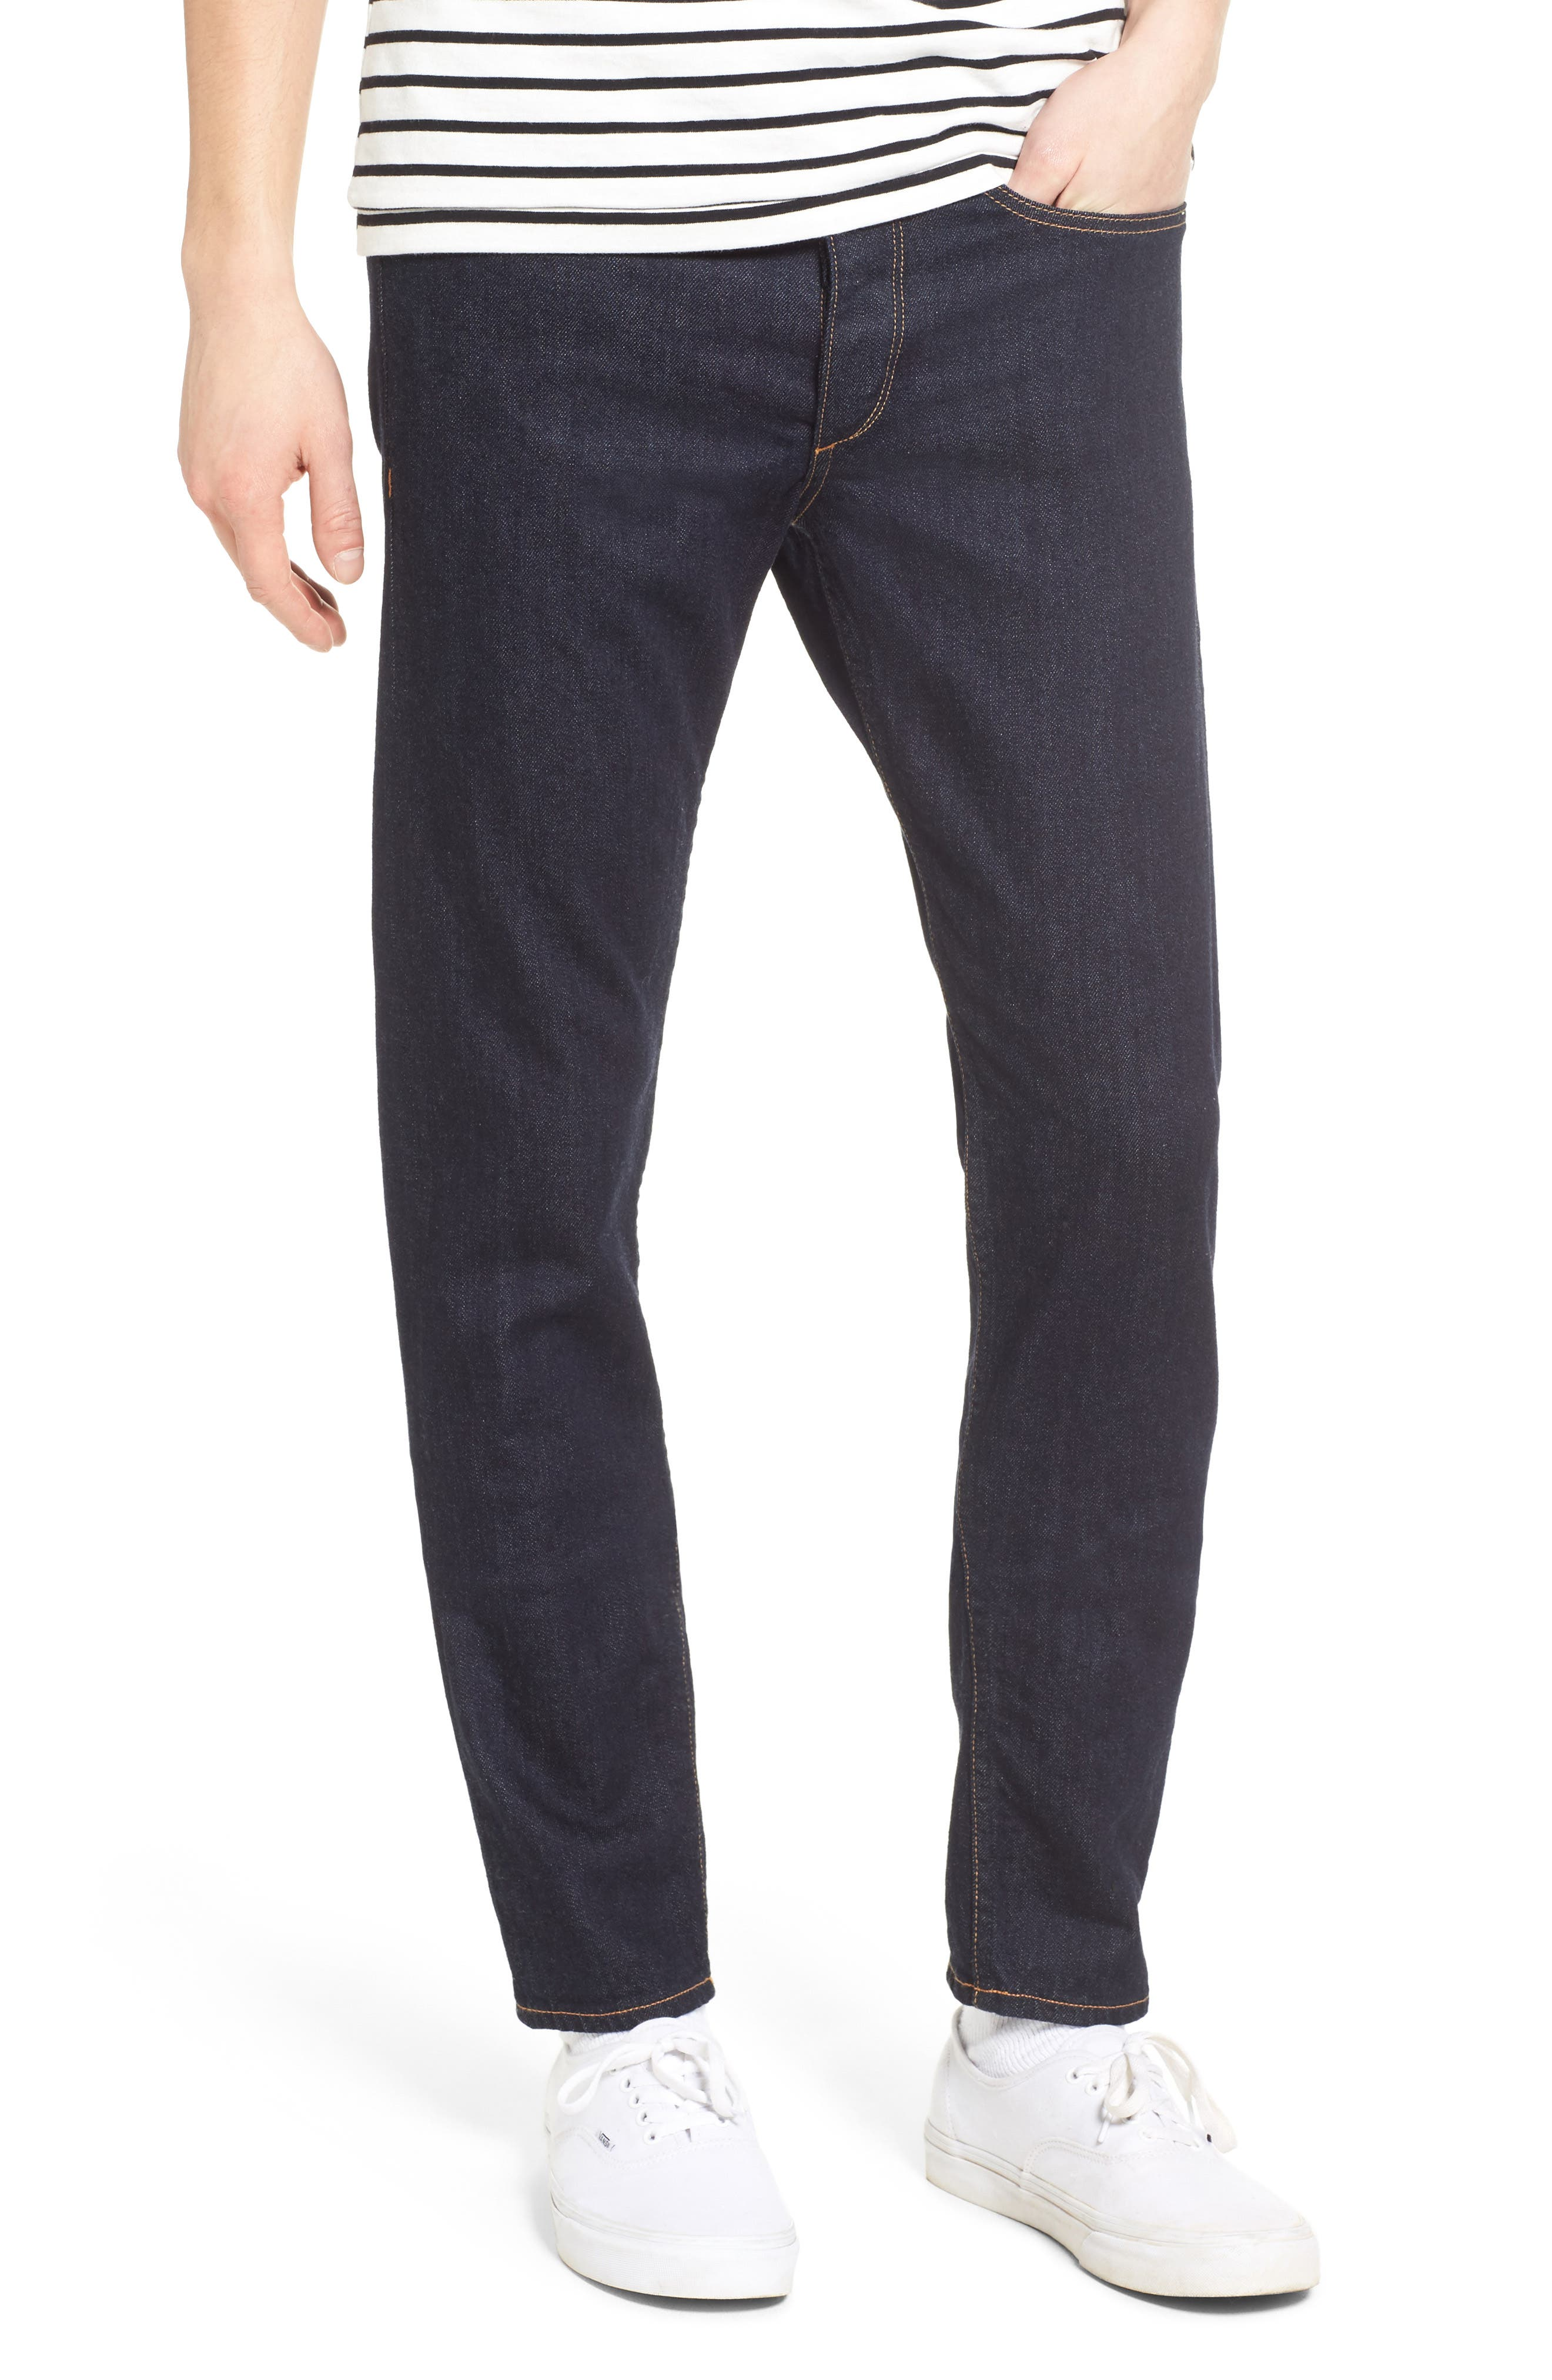 Main Image - rag & bone Standard Issue Fit 1 Skinny Fit Jeans (Rinse Selvage)